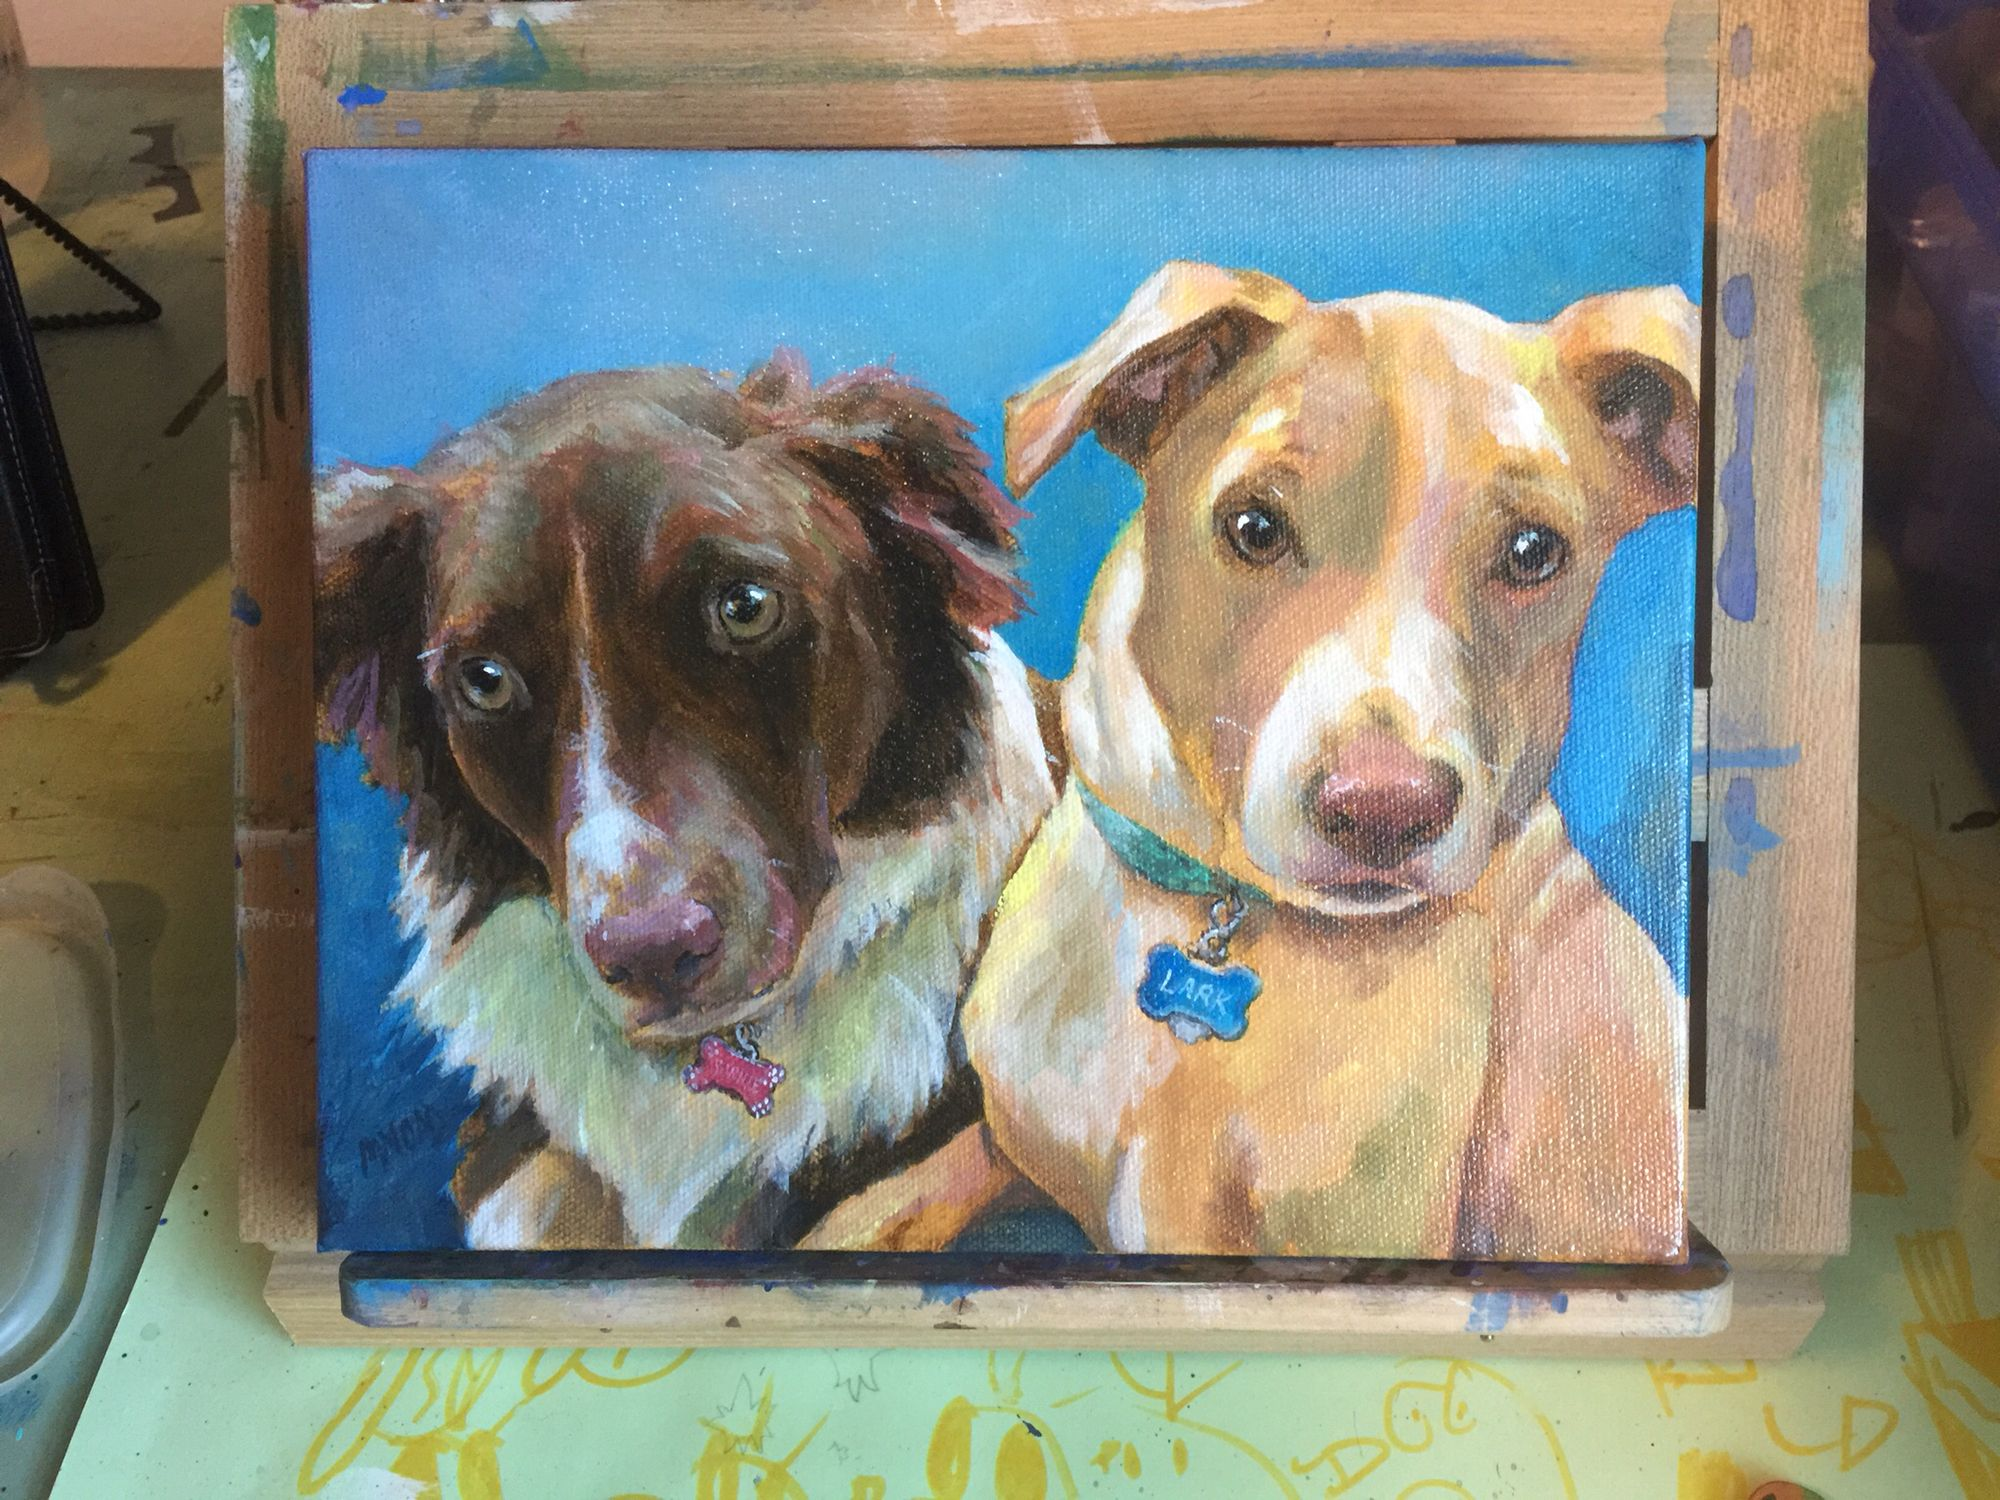 9x12 Pet Portrait Two Dogs Painted Together Dog Art Acrylic On